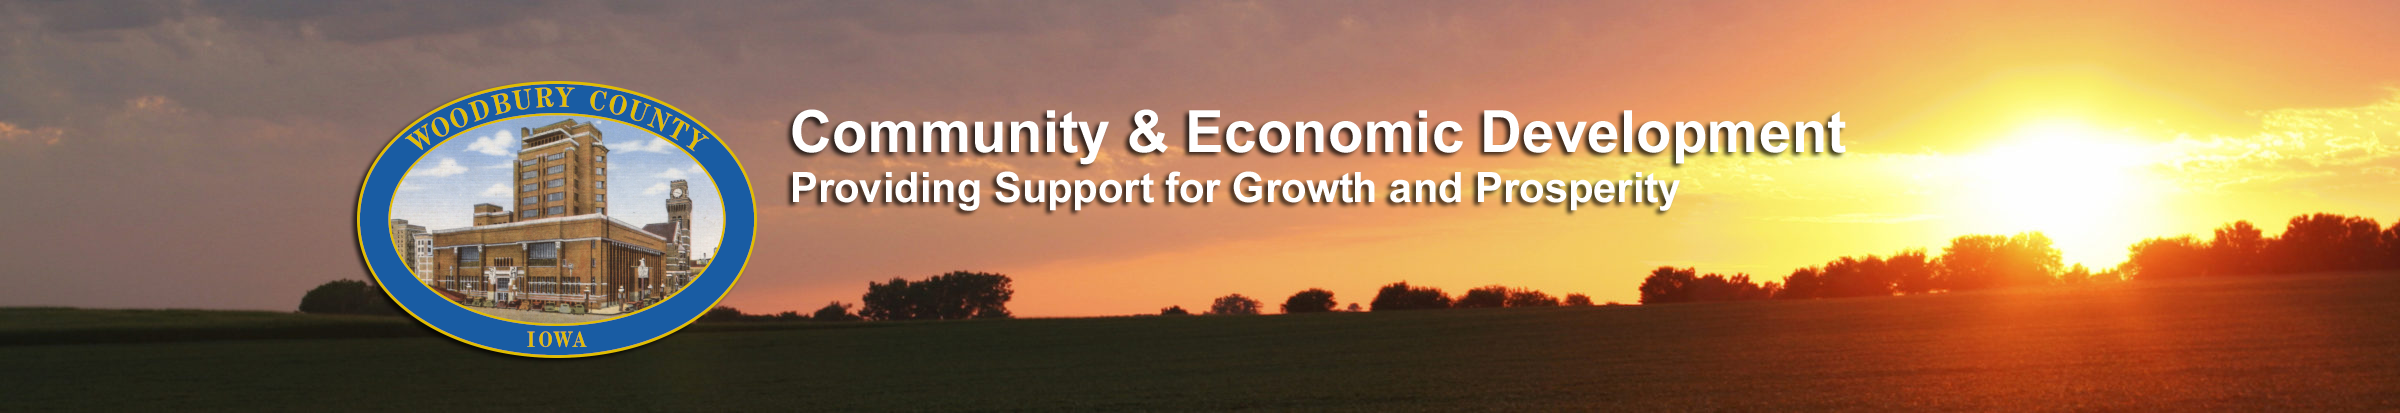 Woodbury County Community & Economic Development